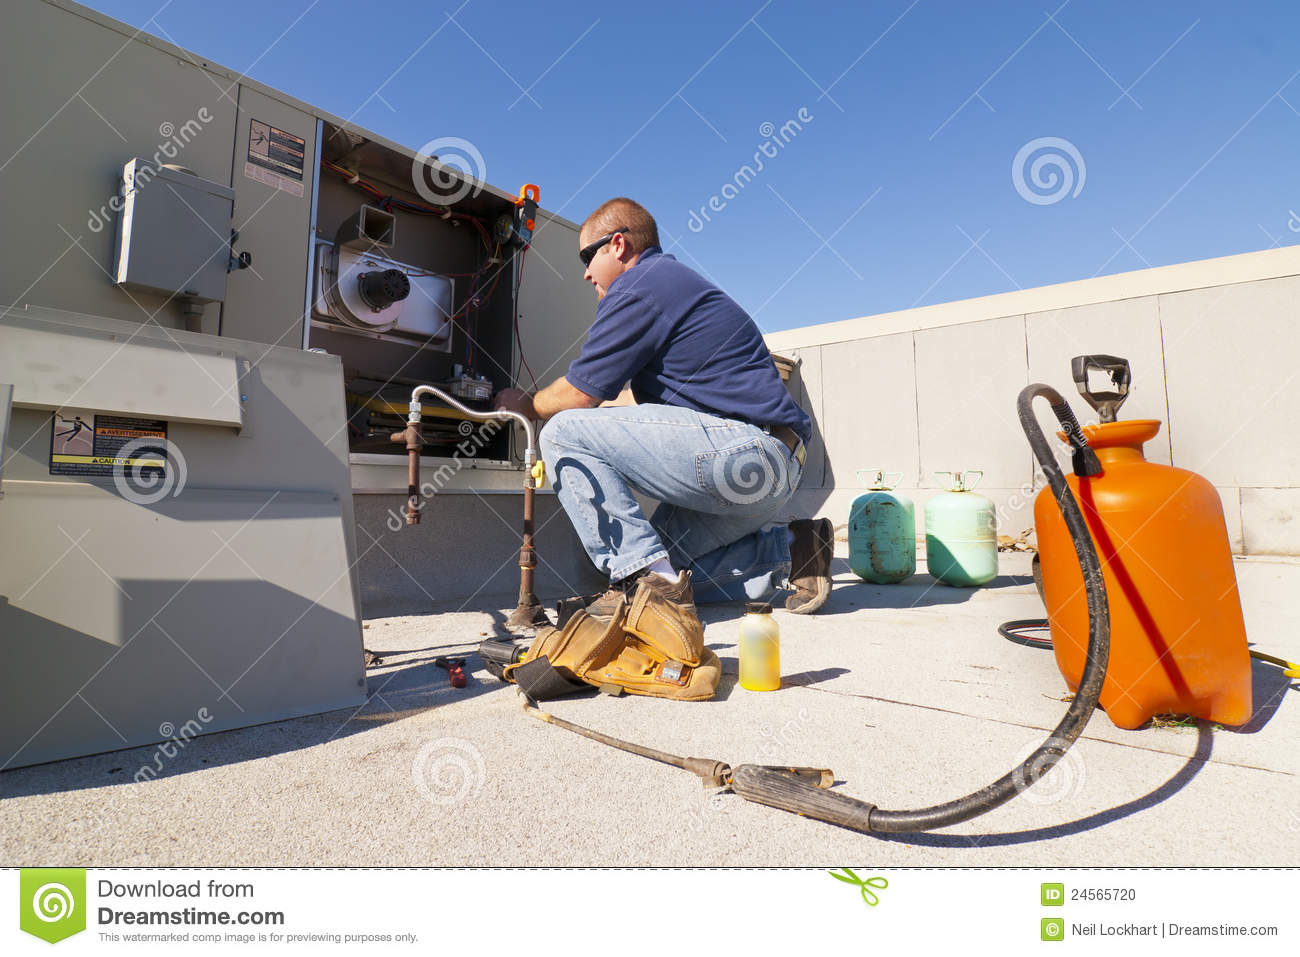 air-conditioner-repair-24565720.jpg